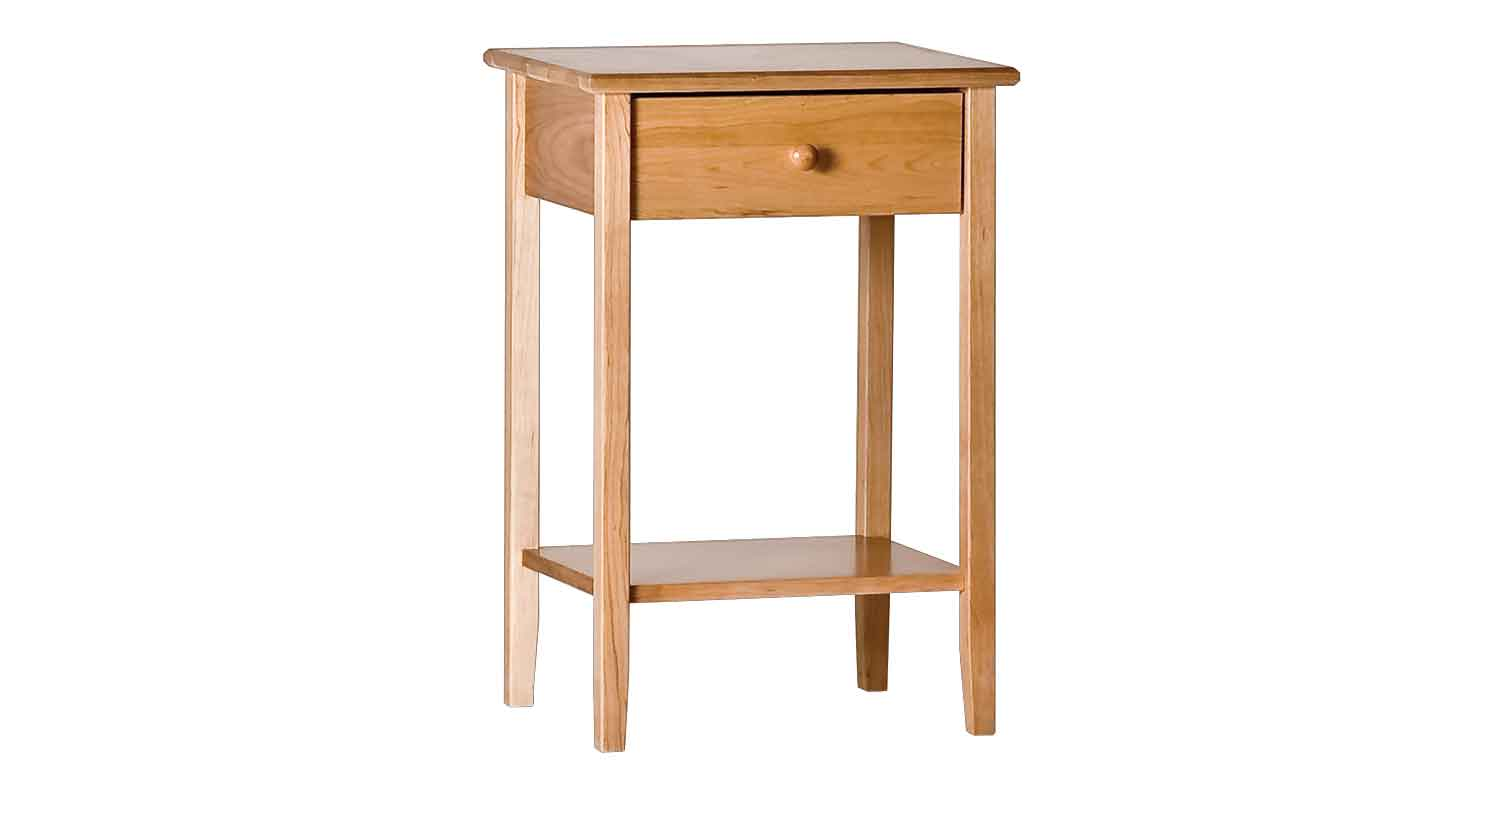 white modern ott outdoor and tables for target furniture room storage threshold accent gold round kijiji living tall table antique decorative glass cabinet full size indoor